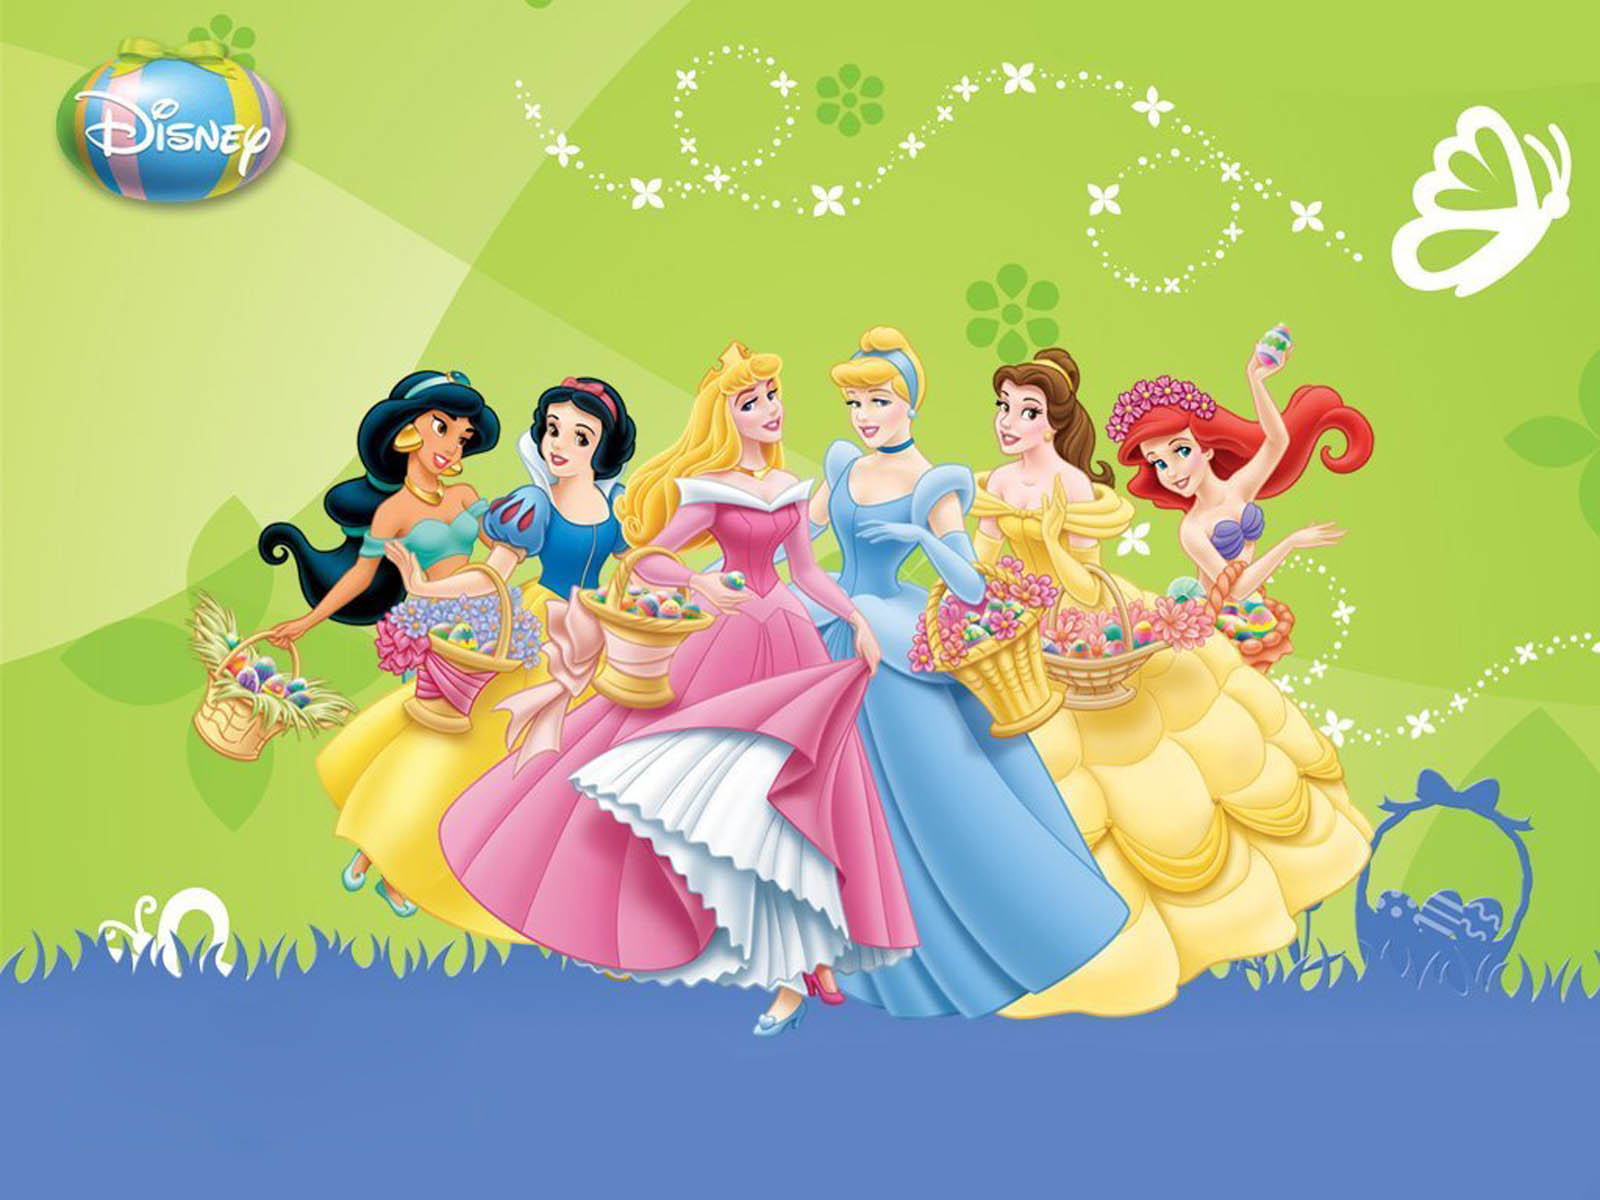 Disney Princess Wallpaper 1600x1200